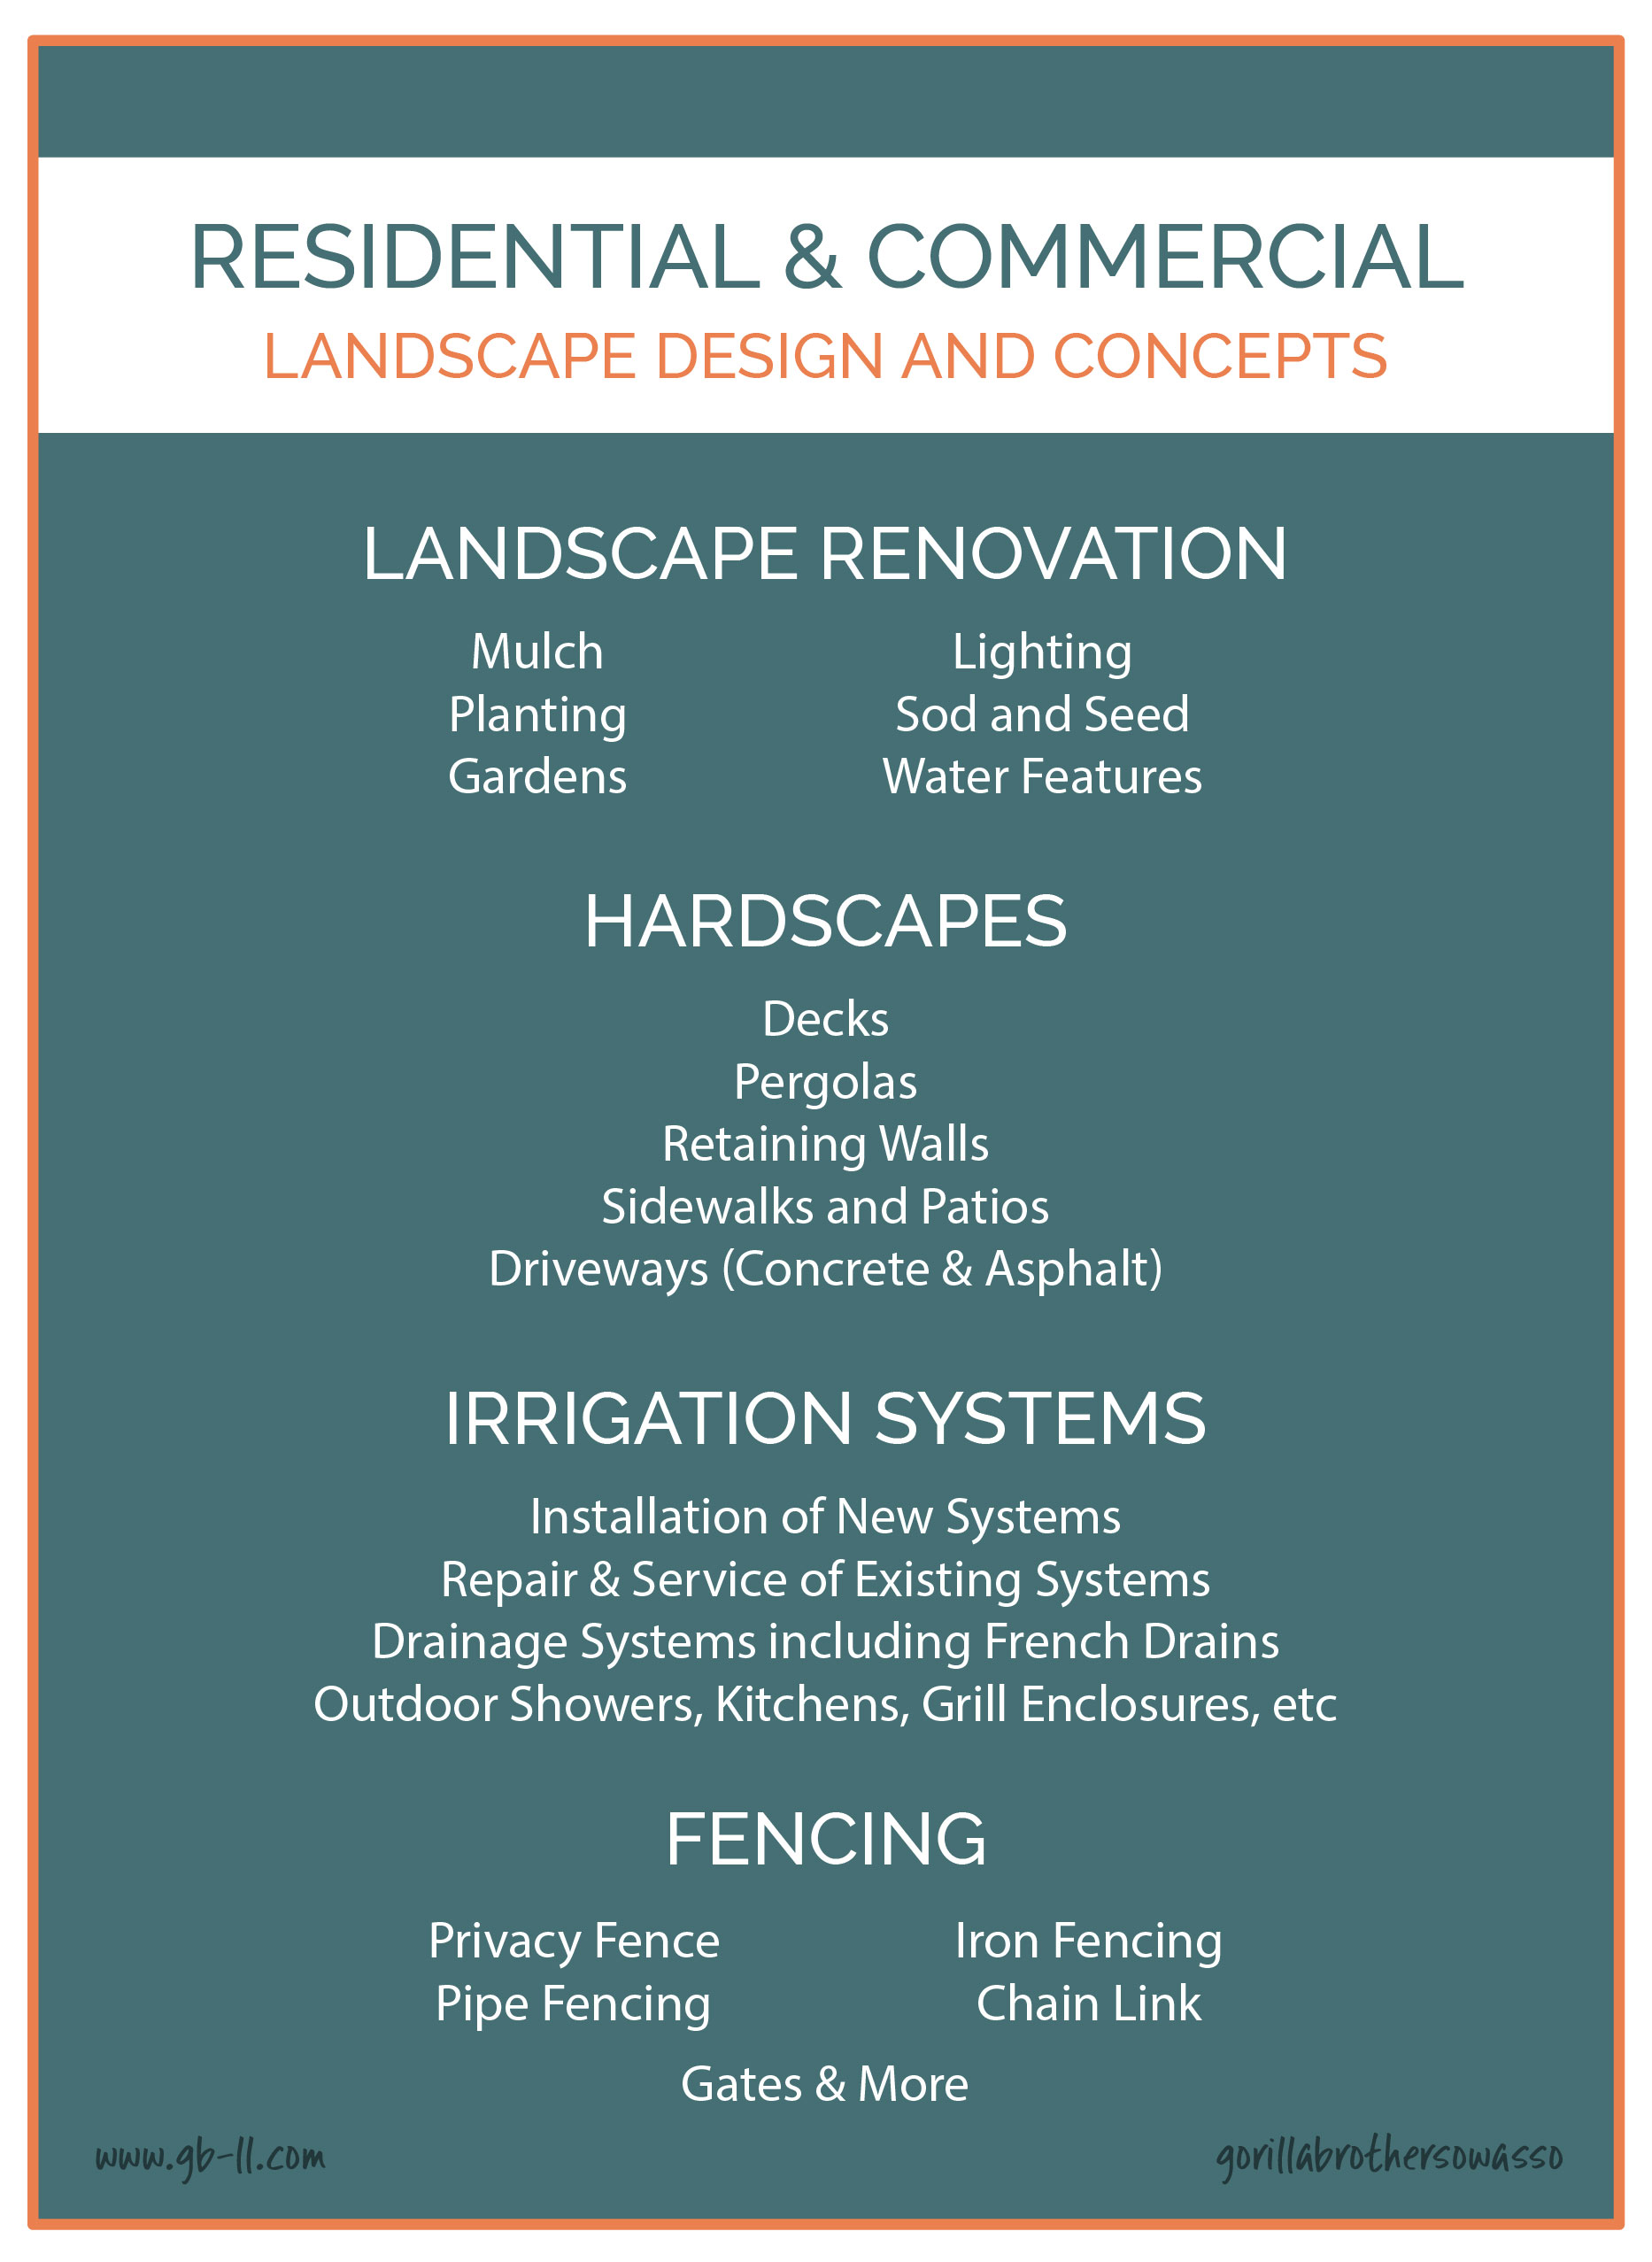 landscaping and hardscape design residential commercial